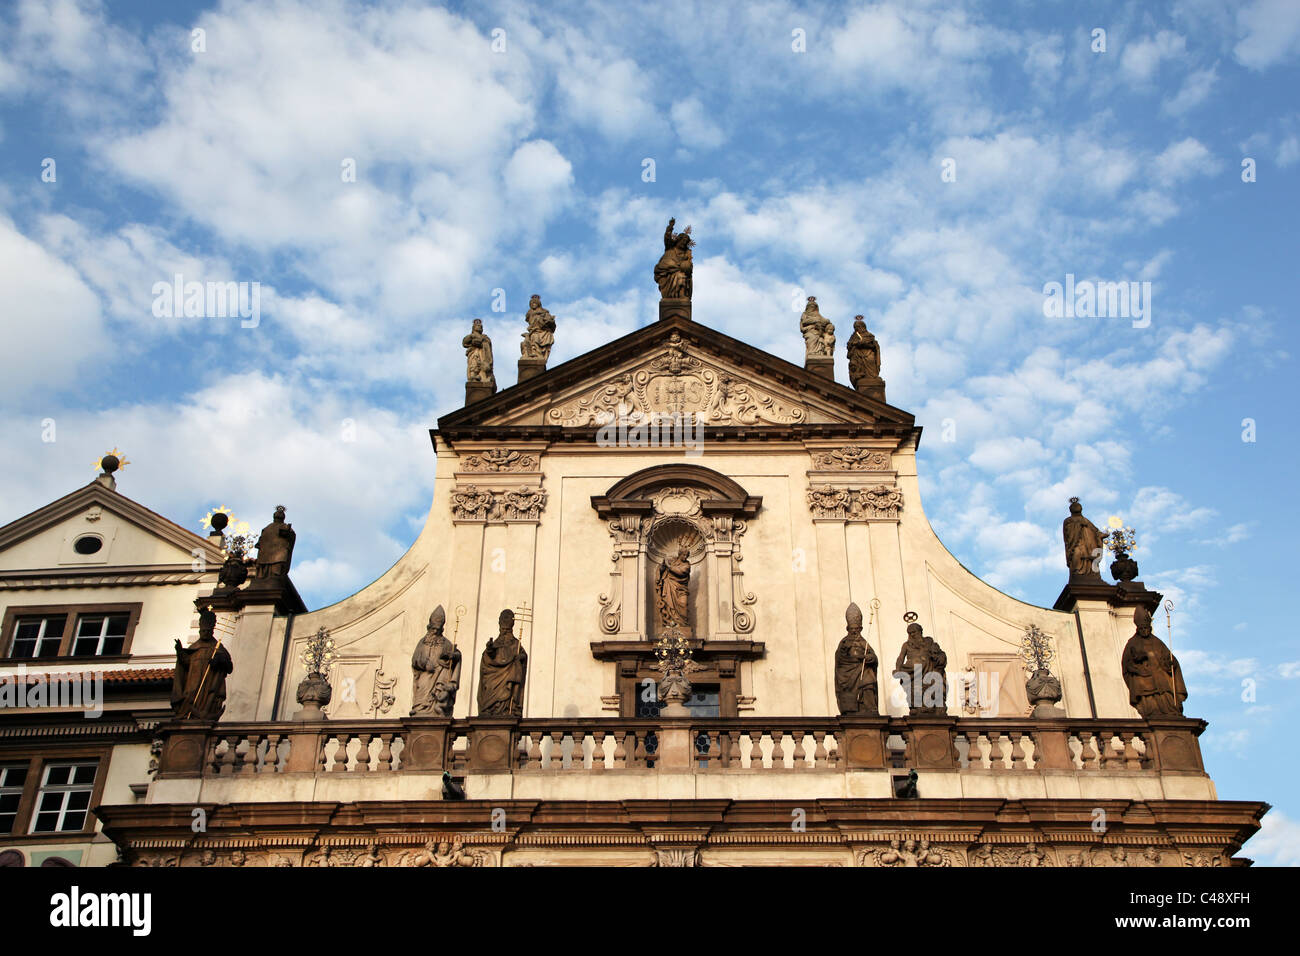 The church of the holy Saviour, Prague, Czech Republic. - Stock Image